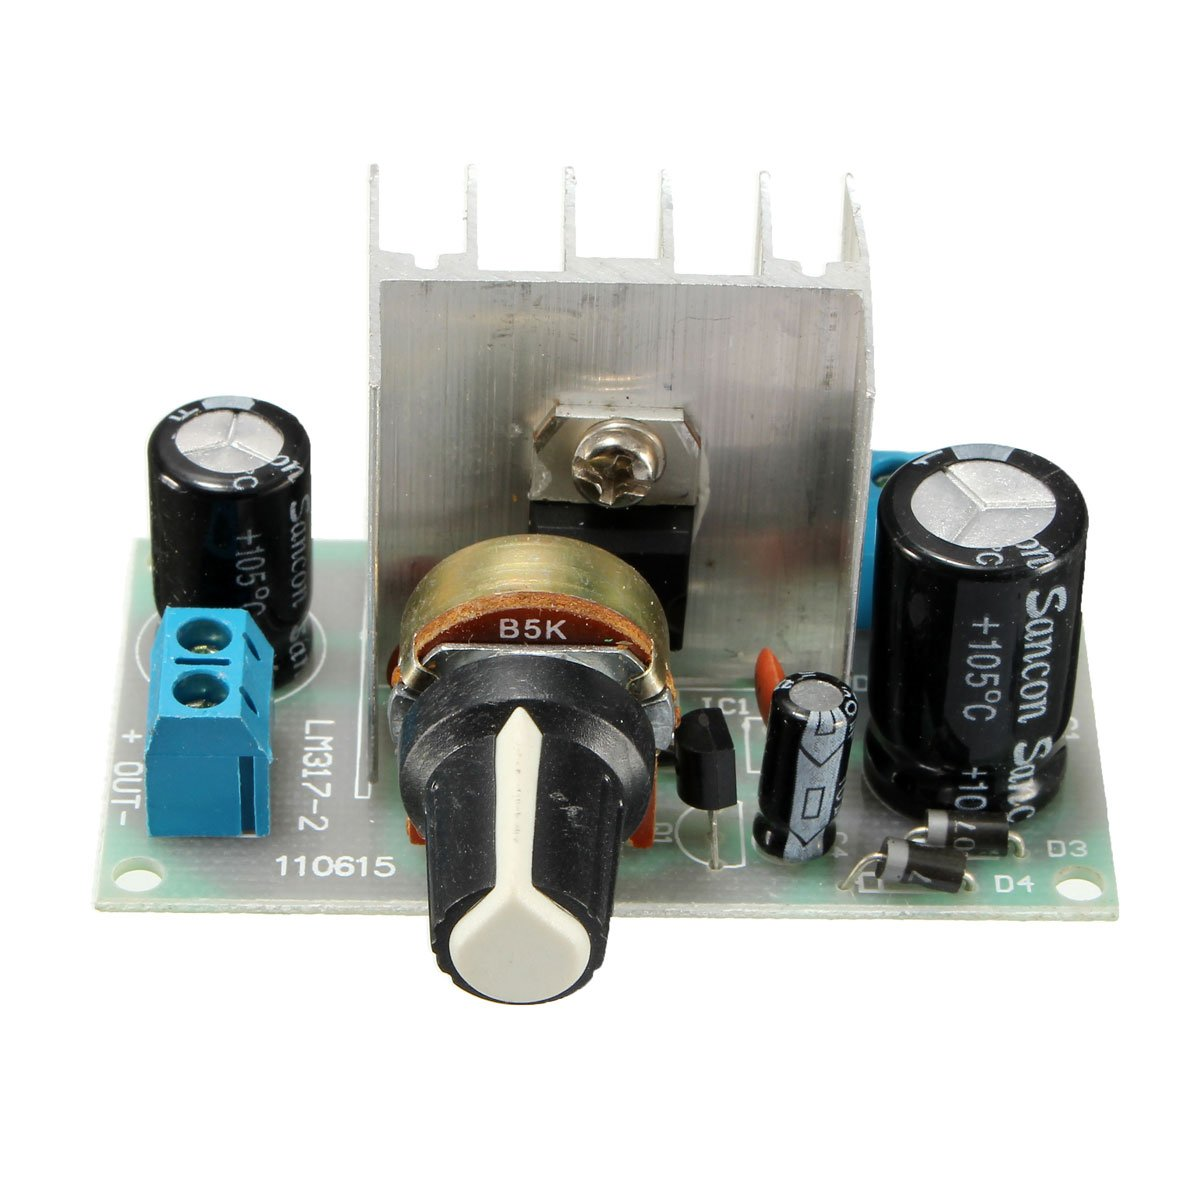 Quickbuying 1pcs Lm317 Ac Dc To Adjustable Voltage Regulator Step Schematic Down Power Supply